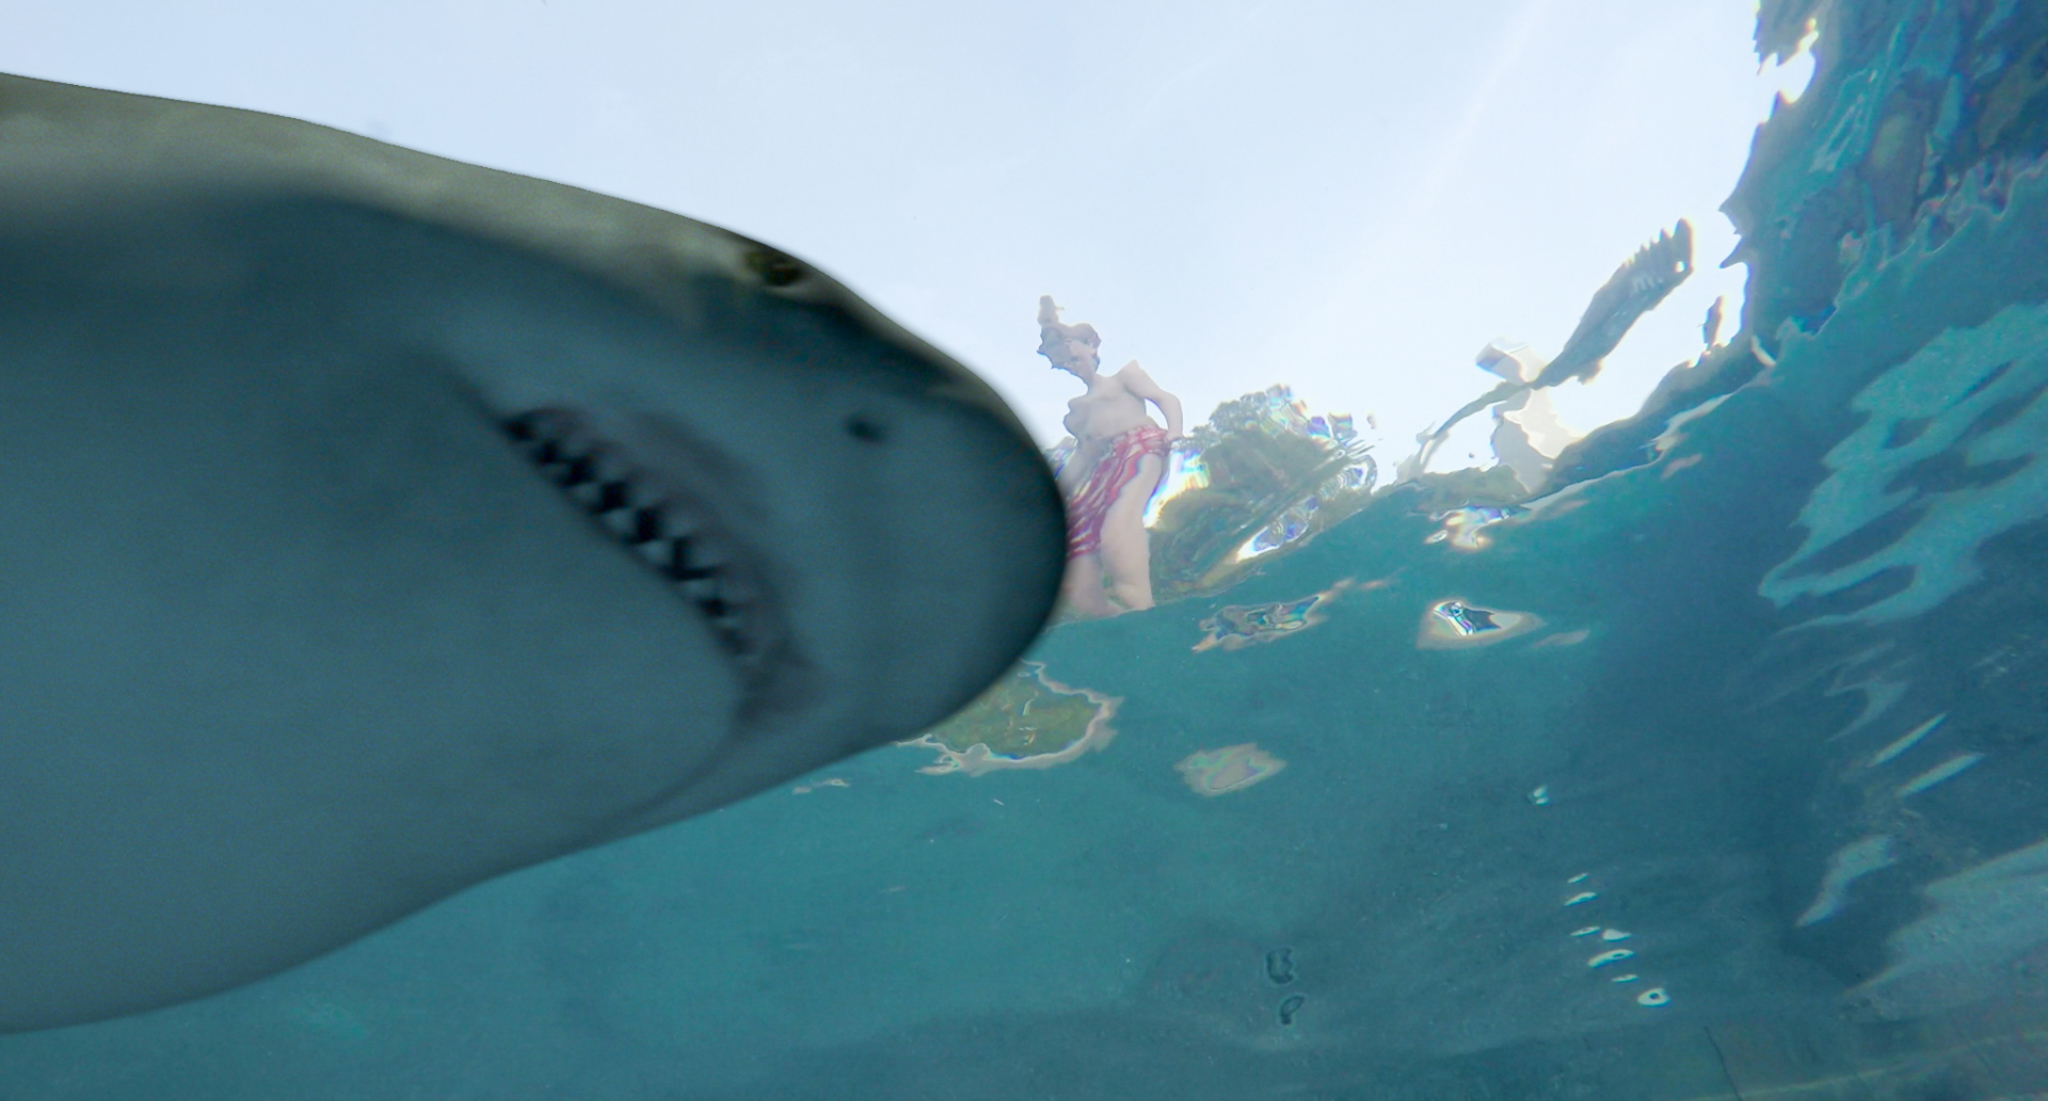 Shark Attack - Anyone for a dip in the pool?